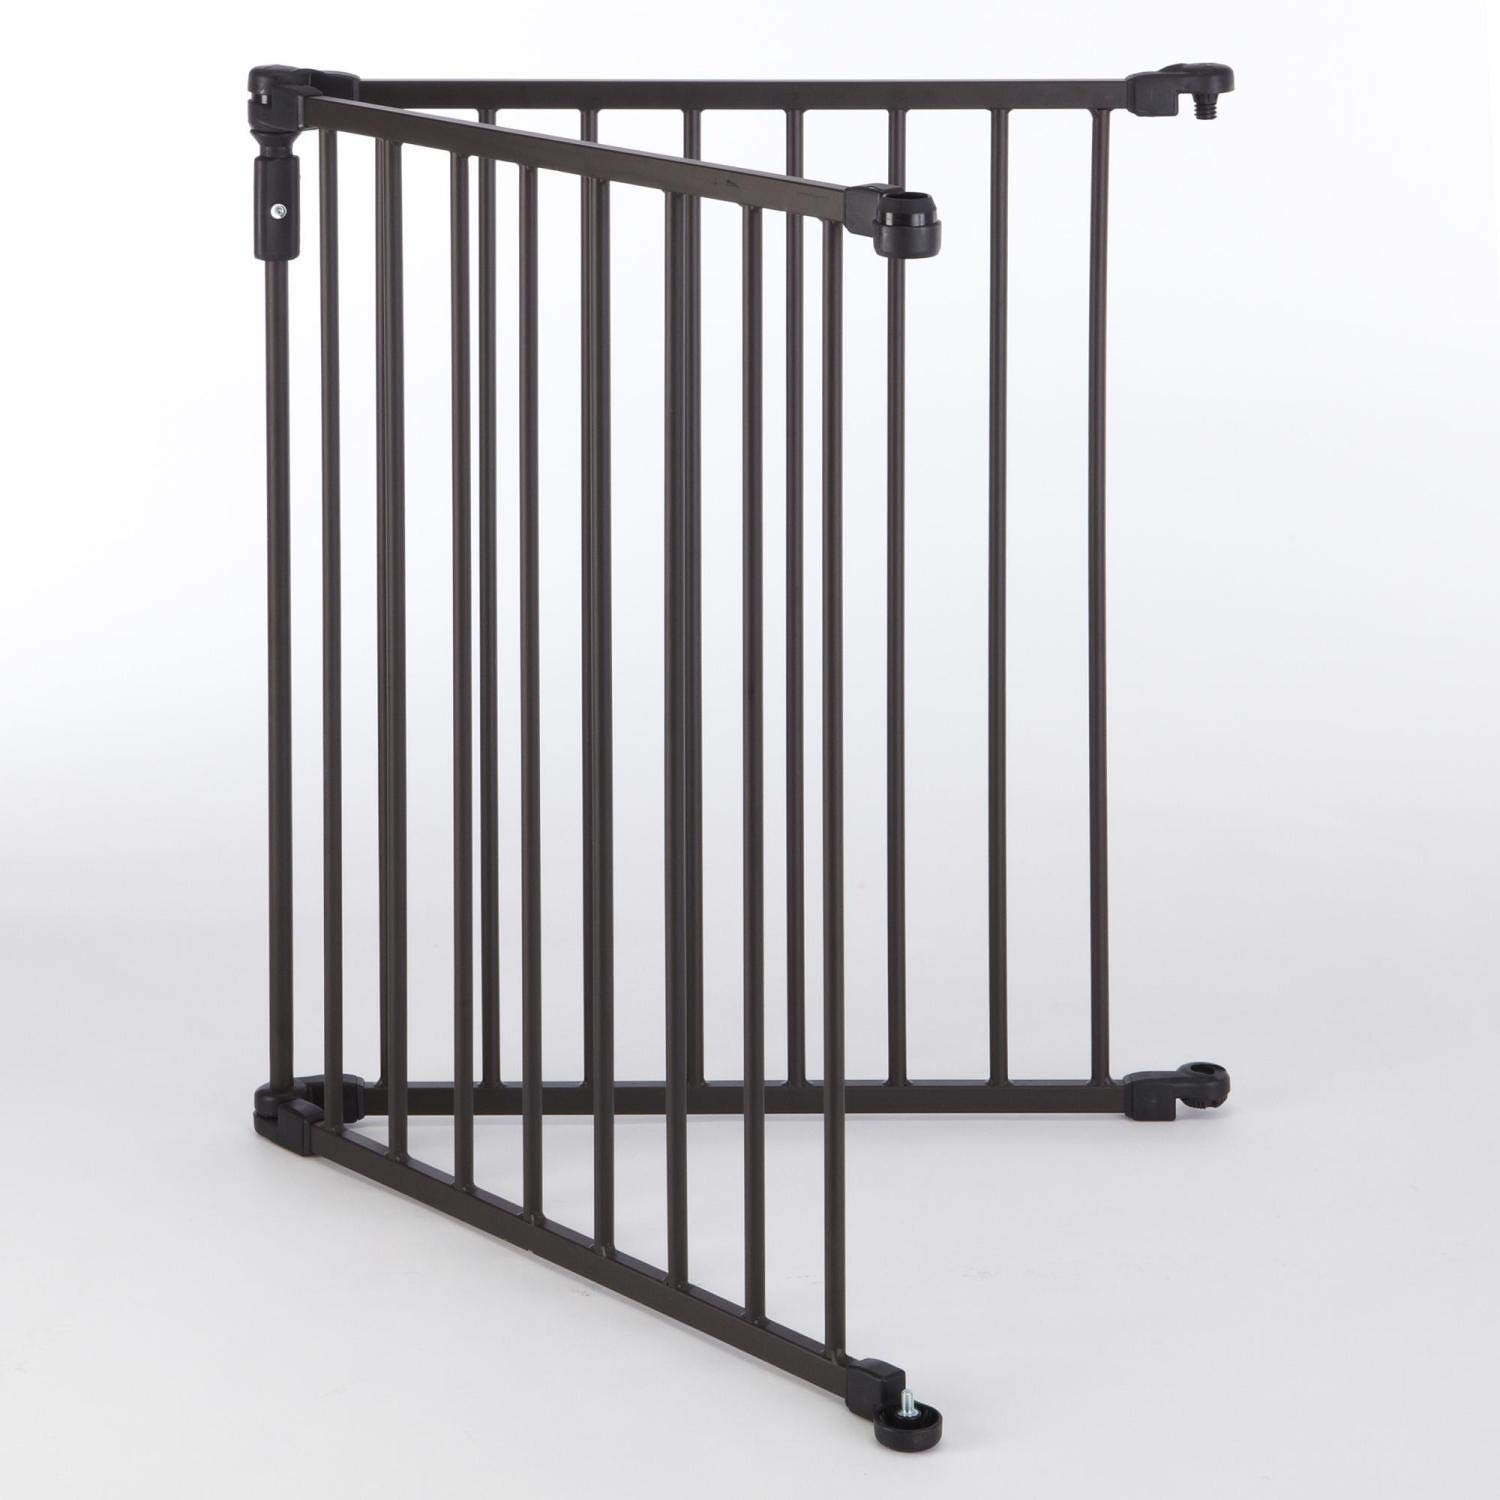 North States 2-Panel Extension for 3-in-1 Arched D cor Metal Superyard Adds up to 48 for an Extra-Wide gate or Play Yard 48 Width, Matte Bronze